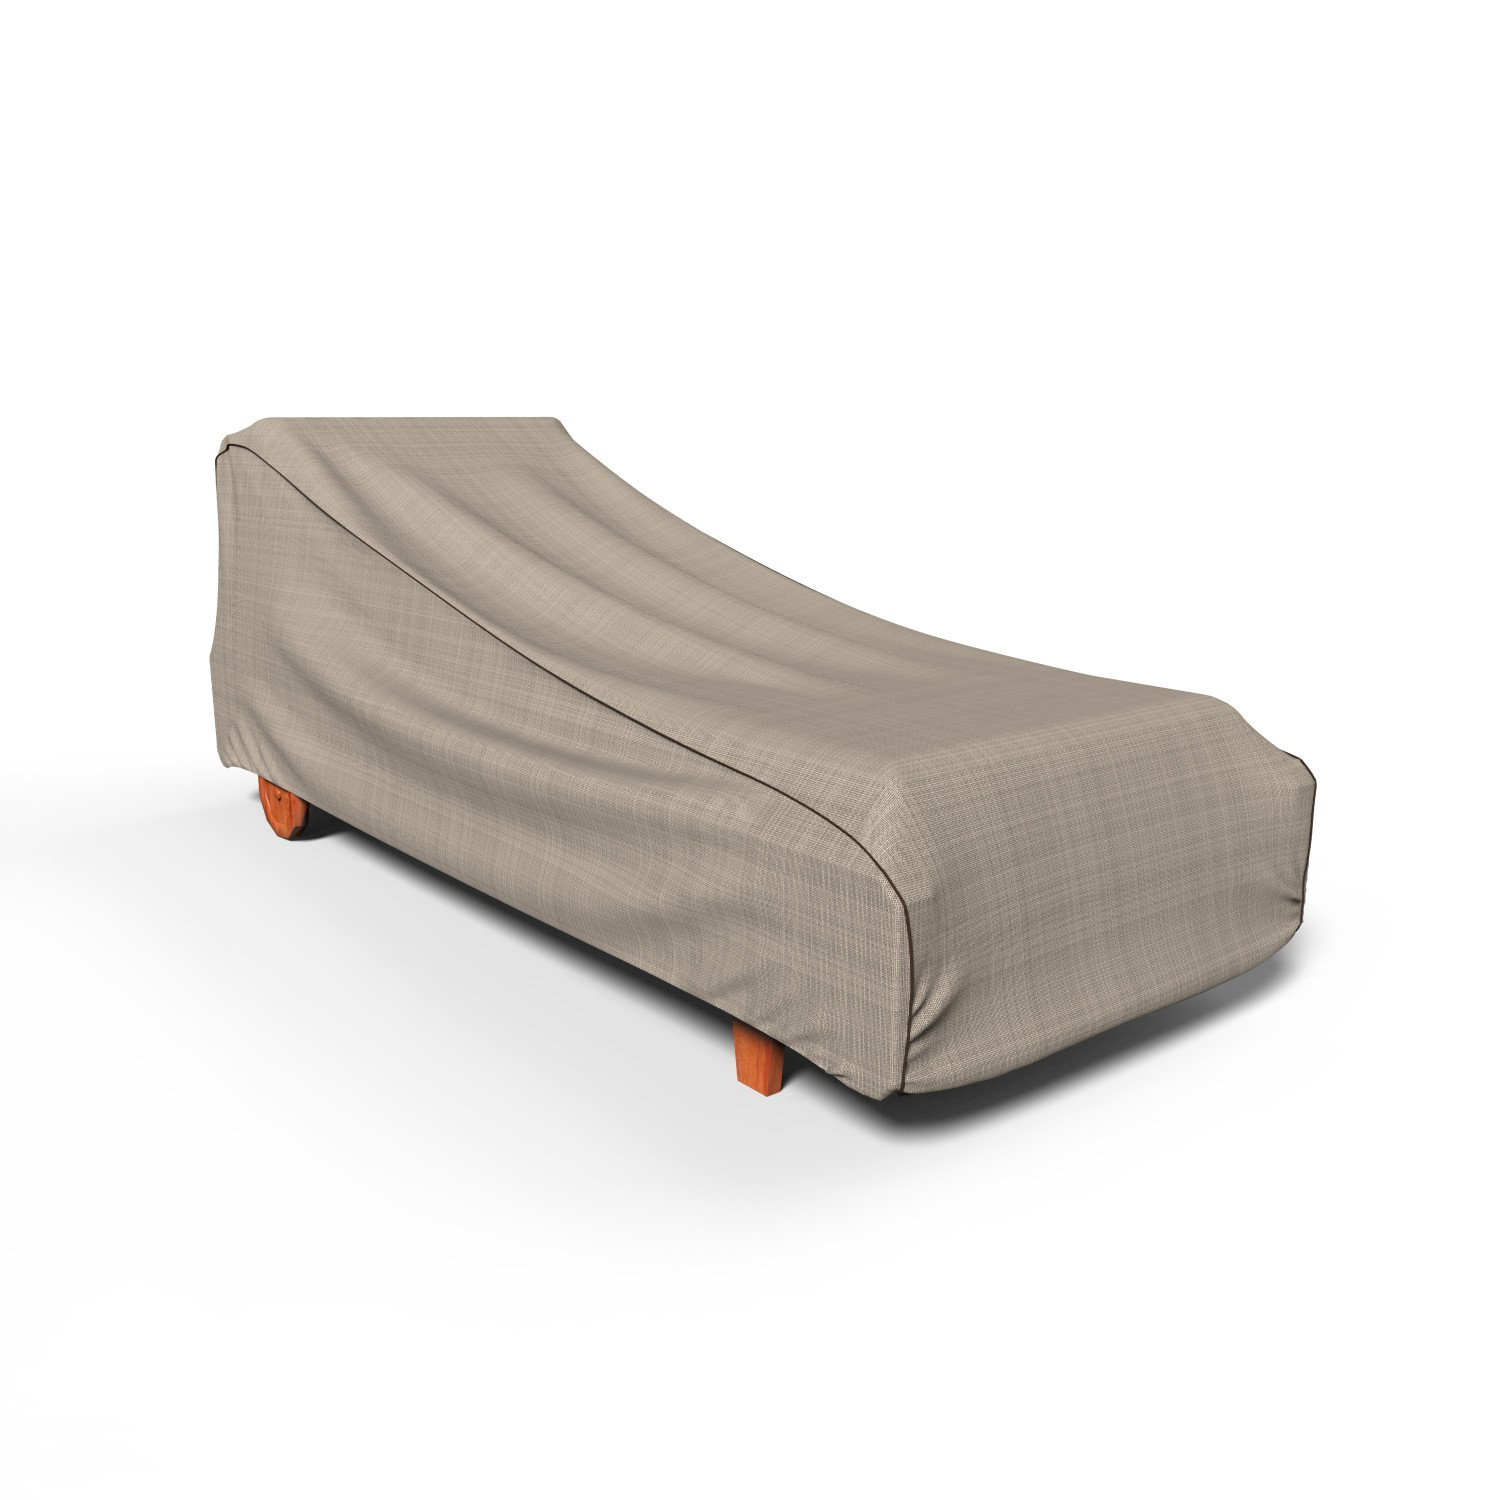 Budge P2A02PMNW2 NeverWet Mojave Patio Chaise Cover, Medium, Black Ivory